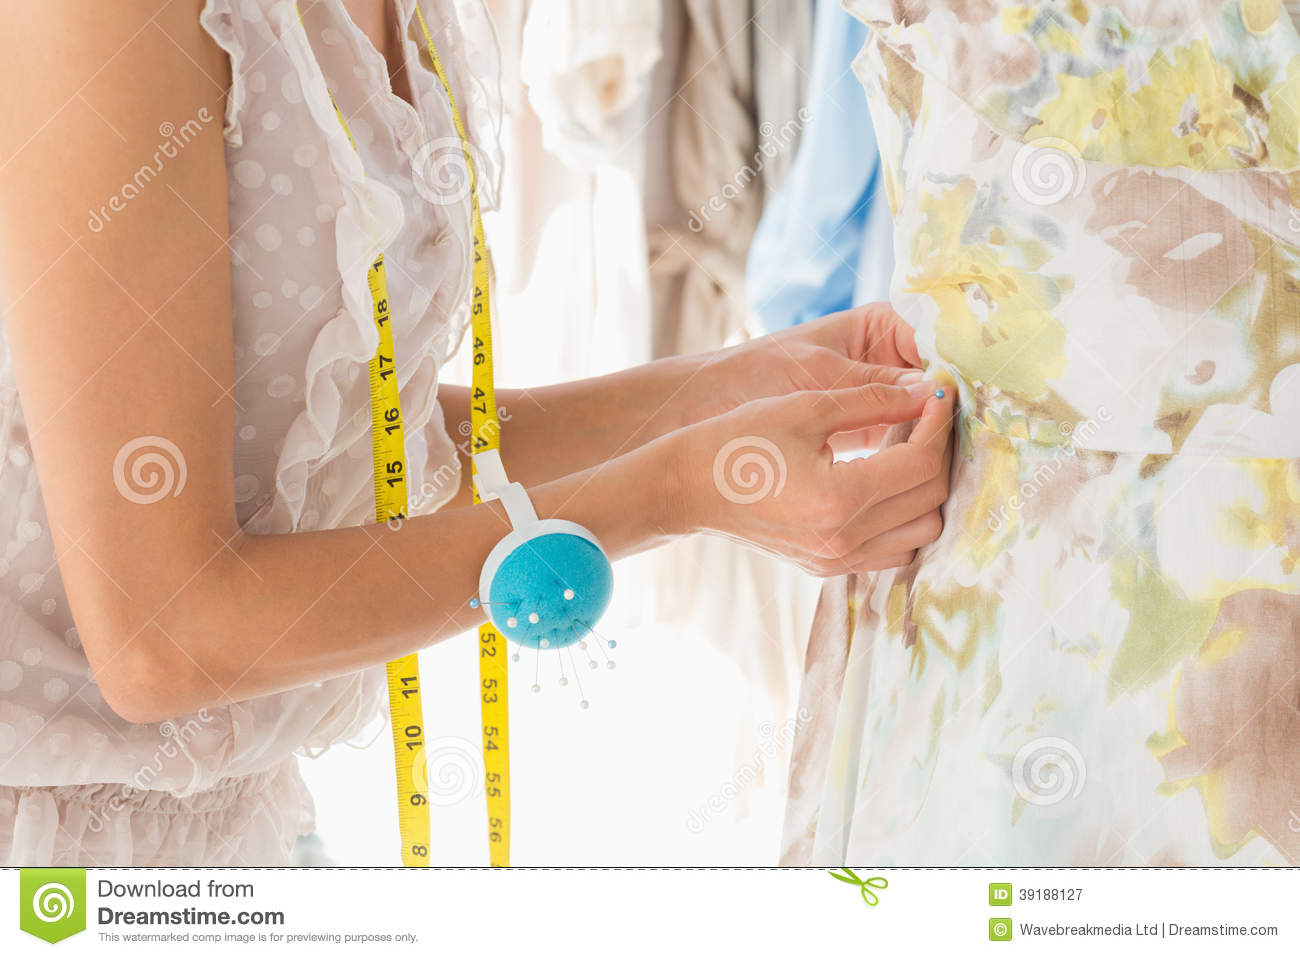 Mid Section Of A Fashion Designer Working On Her Designs Royalty Free Stock Photography